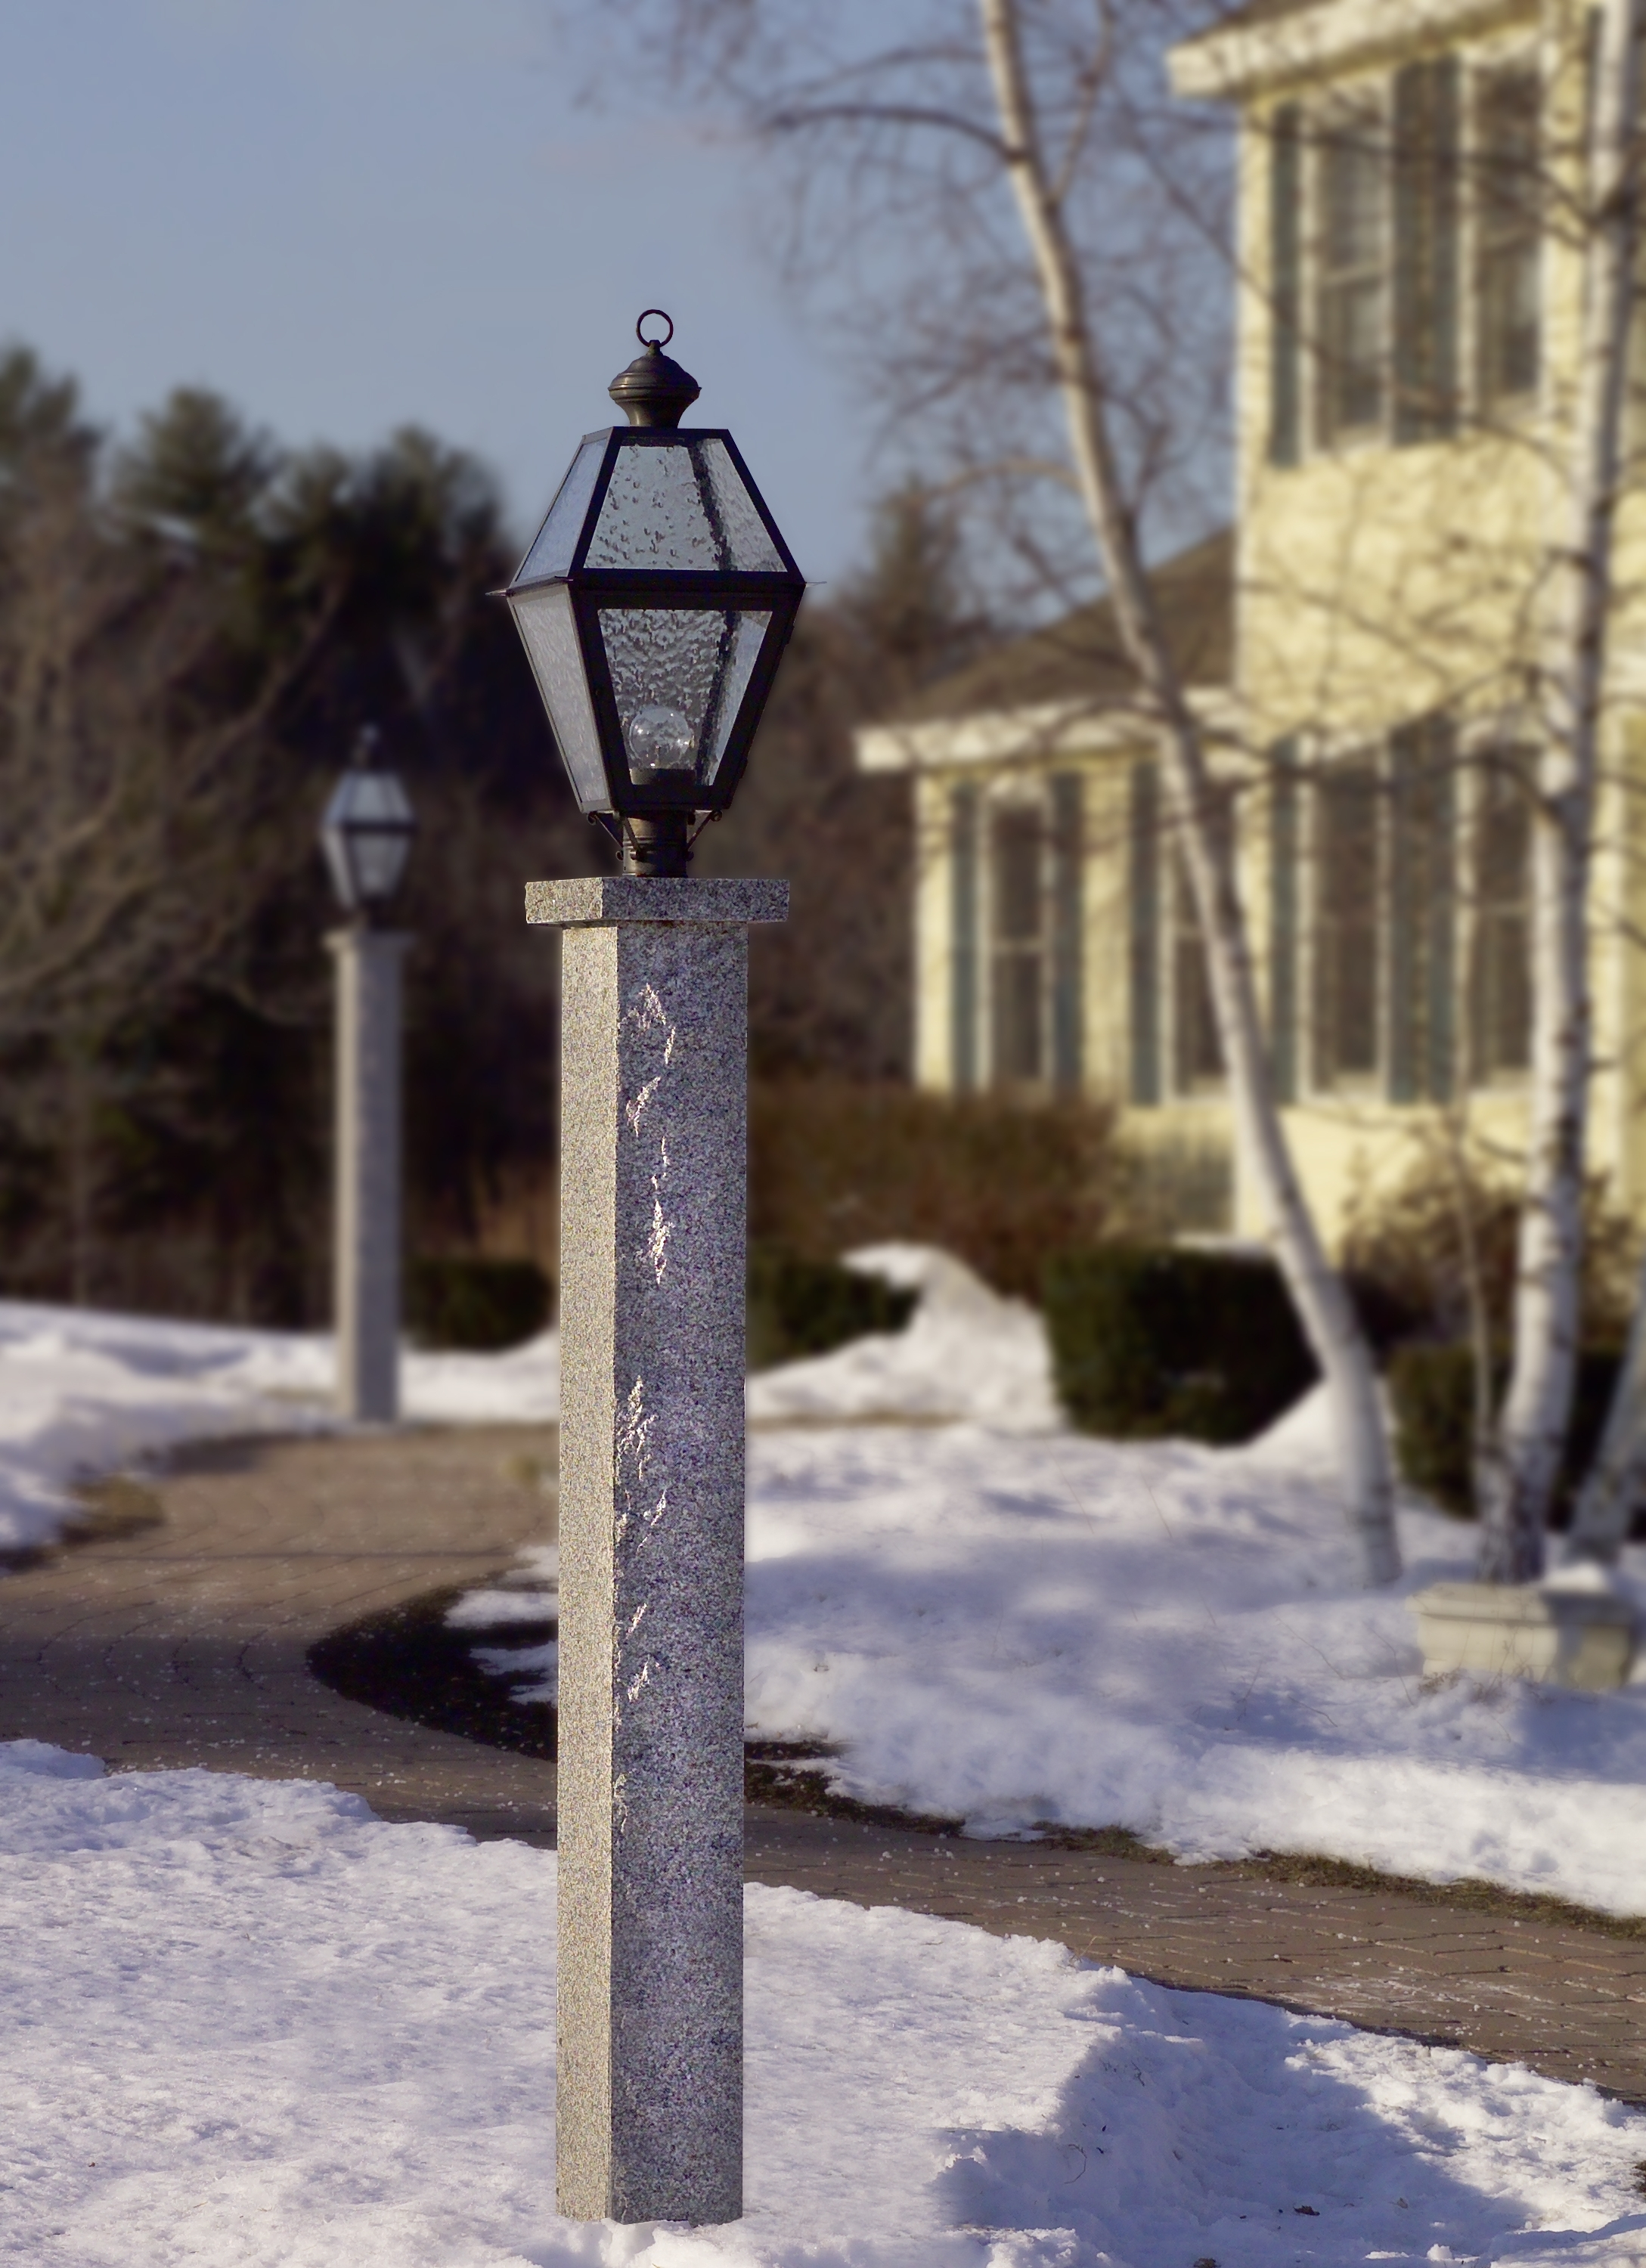 Outdoor Driveway Lanterns Throughout Most Popular Lamp : Lamp Post Prop Seven Productions Driveway Lanterns Light (View 8 of 20)